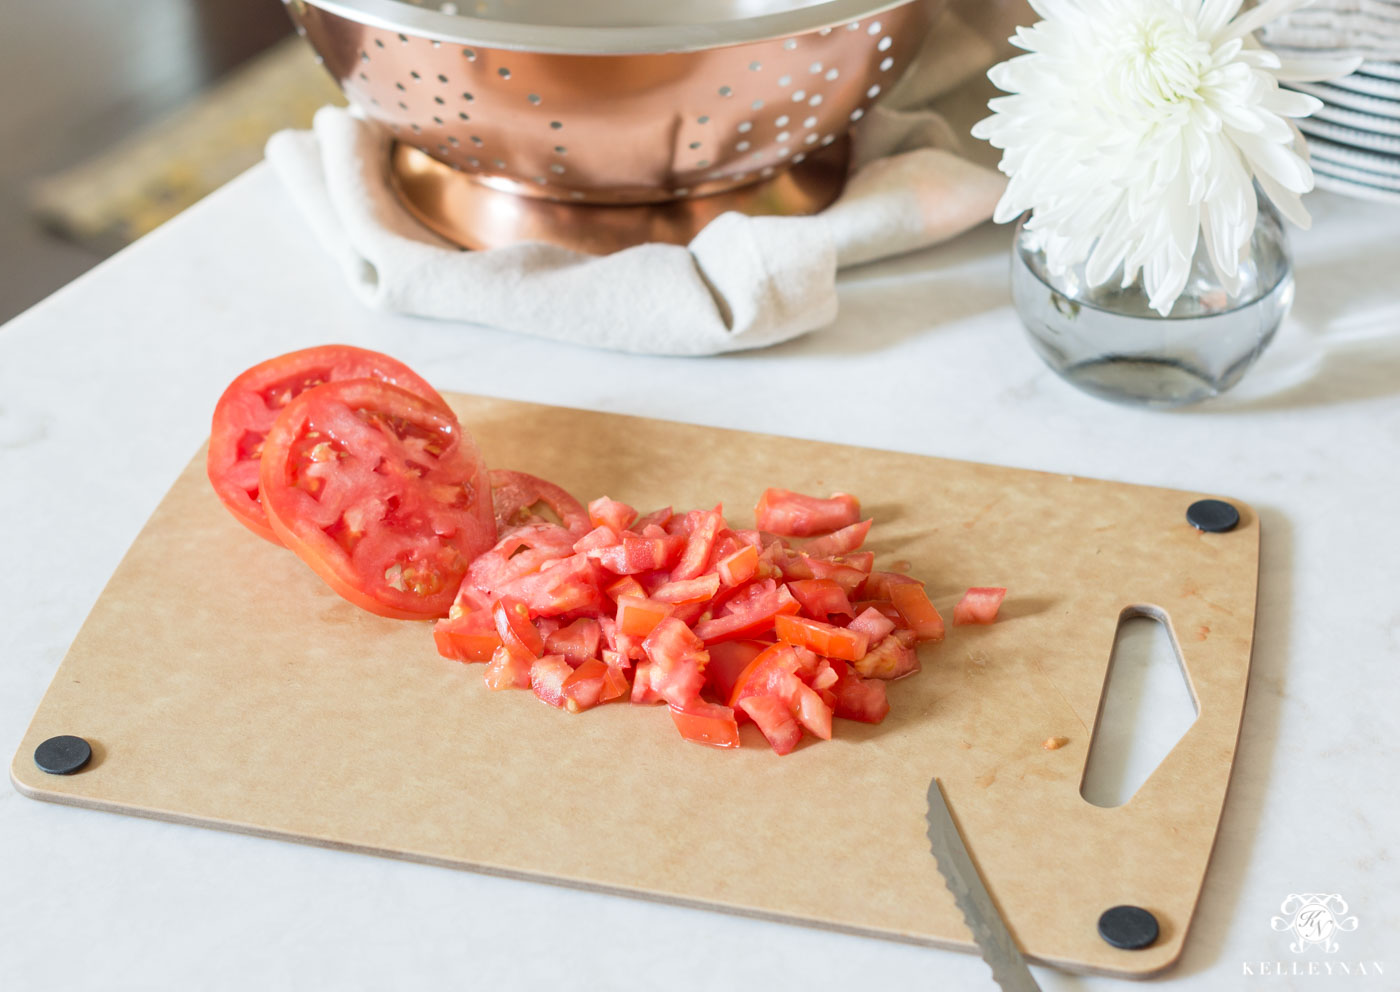 Chopping tomatoes on cutting board